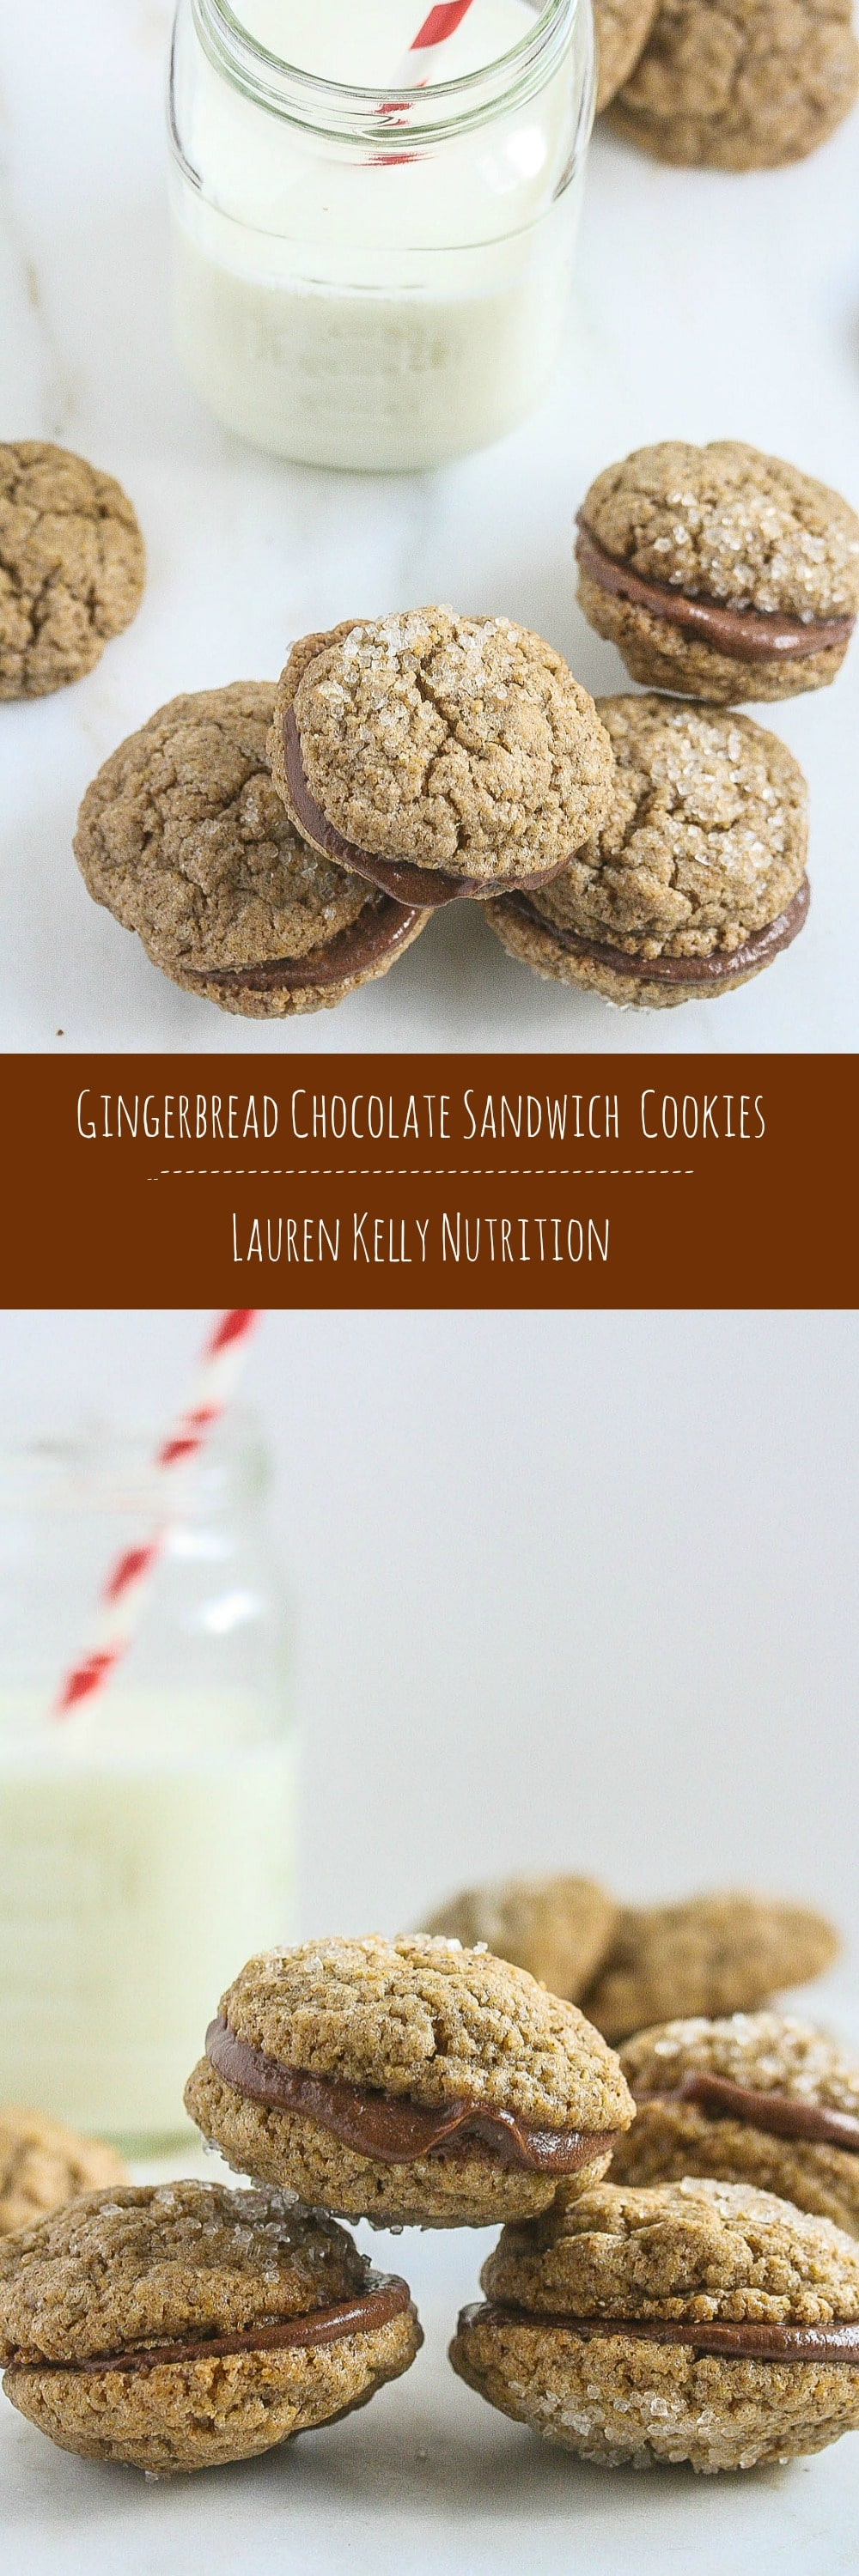 Healthier Gingerbread Chocolate Sandwich Cookies from Lauren Kelly Nutrition #ChristmasWeek